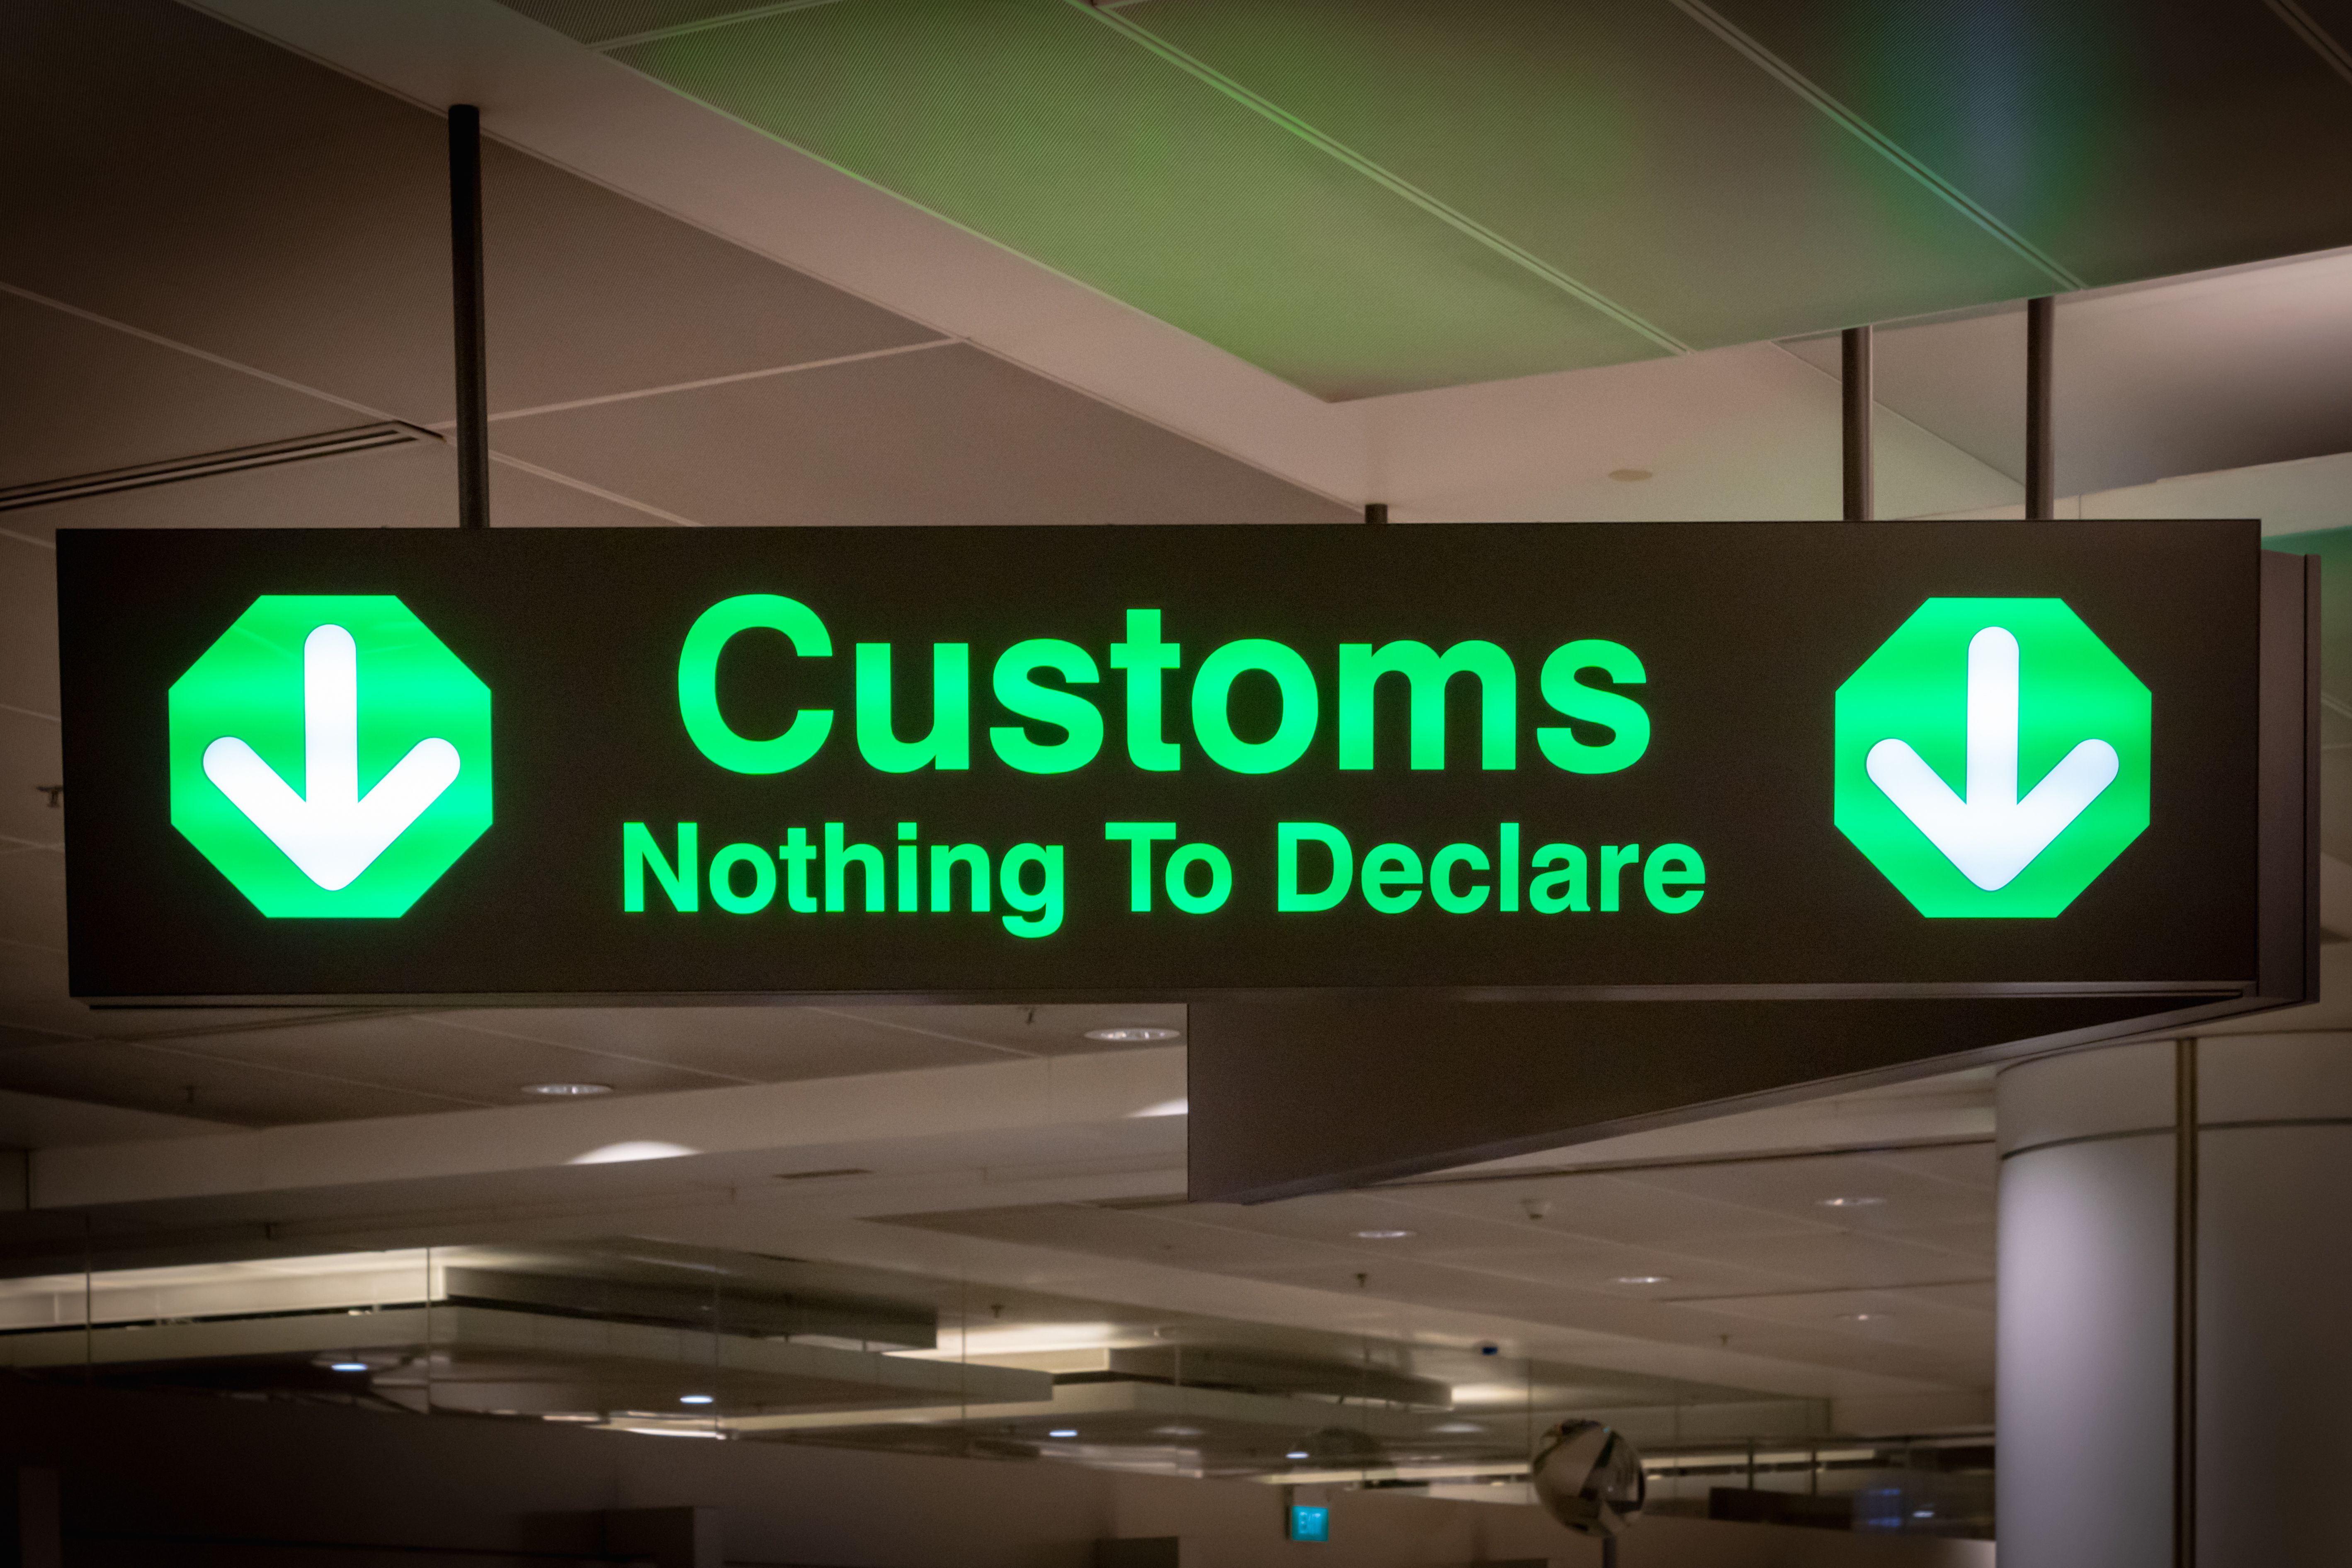 A green chanel customs sign for nothing to declare